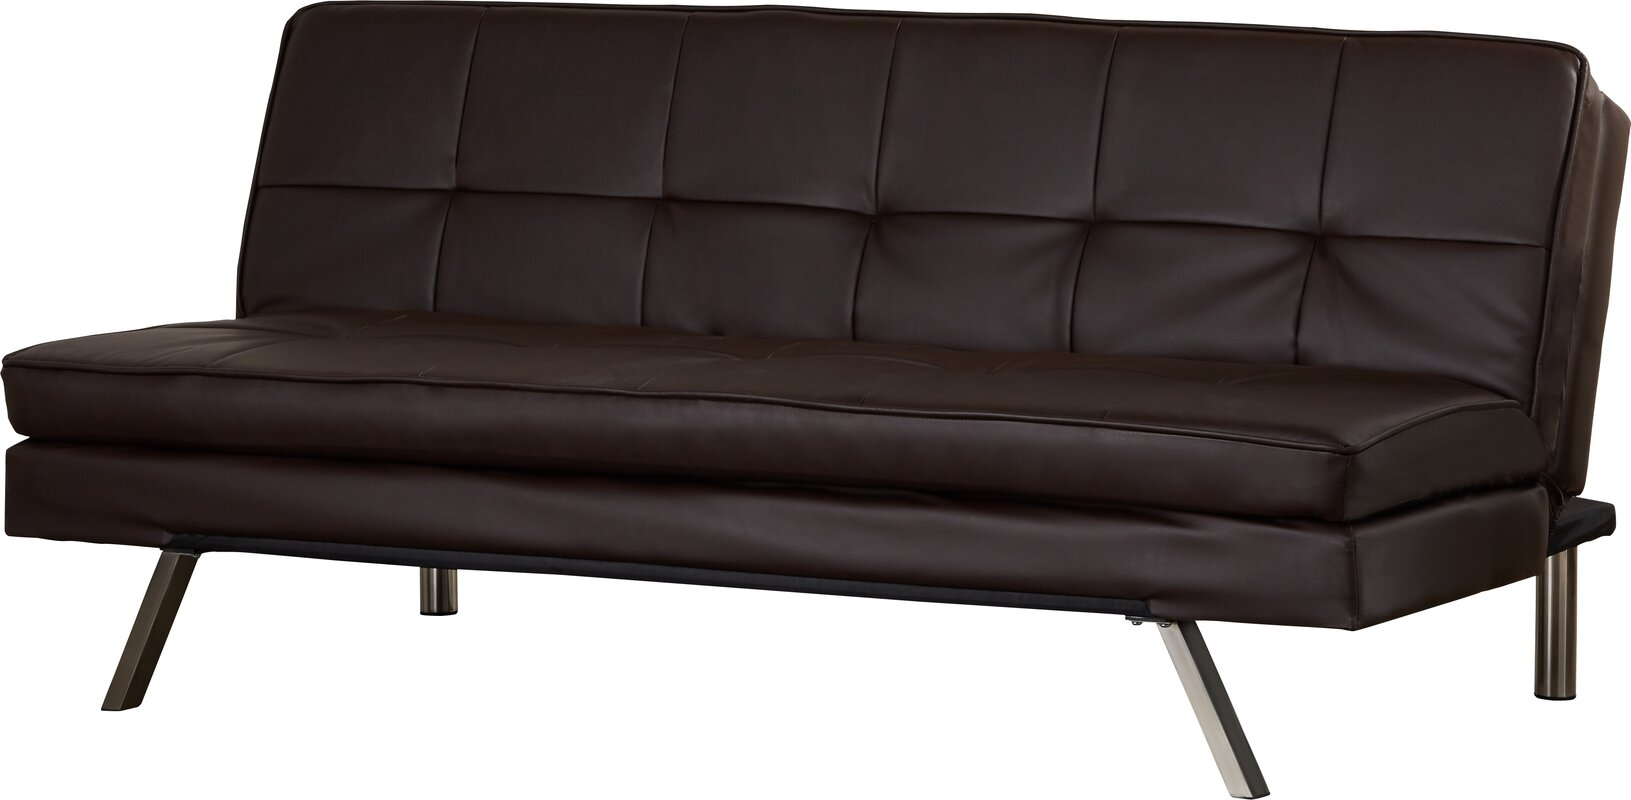 leader lifestyle 3 sitzer schlafsofa florence. Black Bedroom Furniture Sets. Home Design Ideas